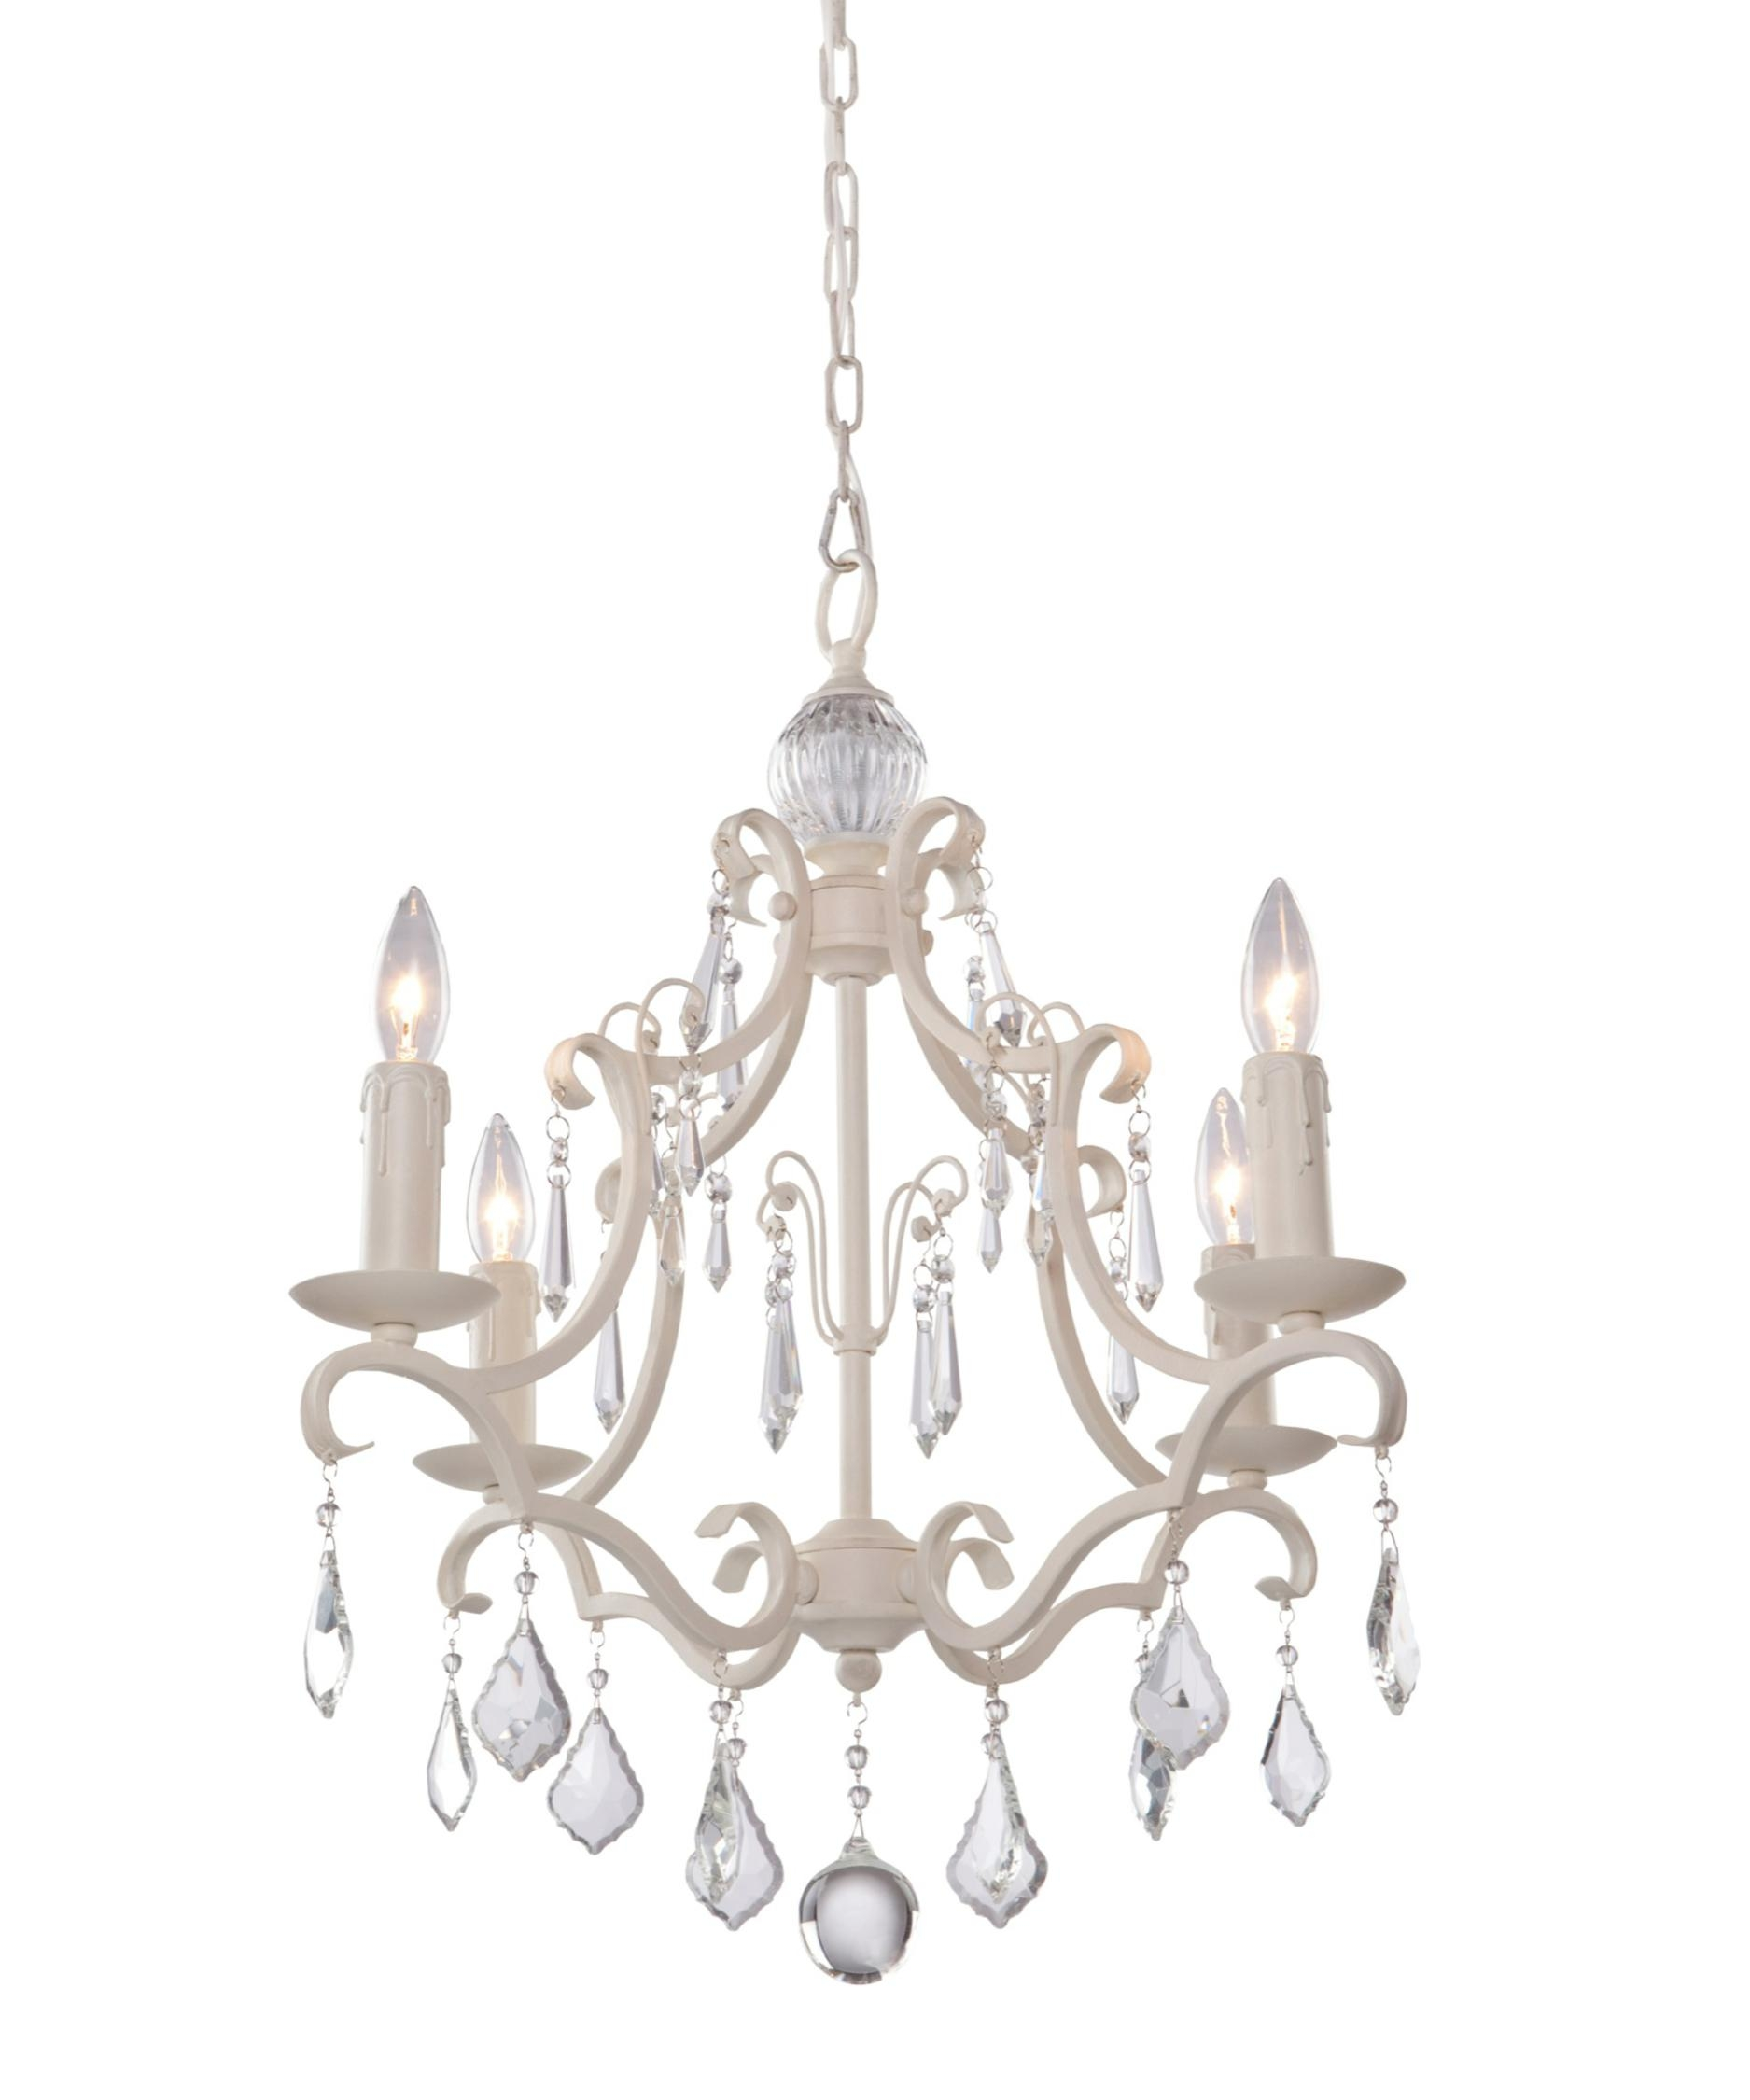 Artcraft Cl1574 Vintage 17 Inch Wide 4 Light Mini Chandelier For Chandeliers Vintage (#2 of 12)